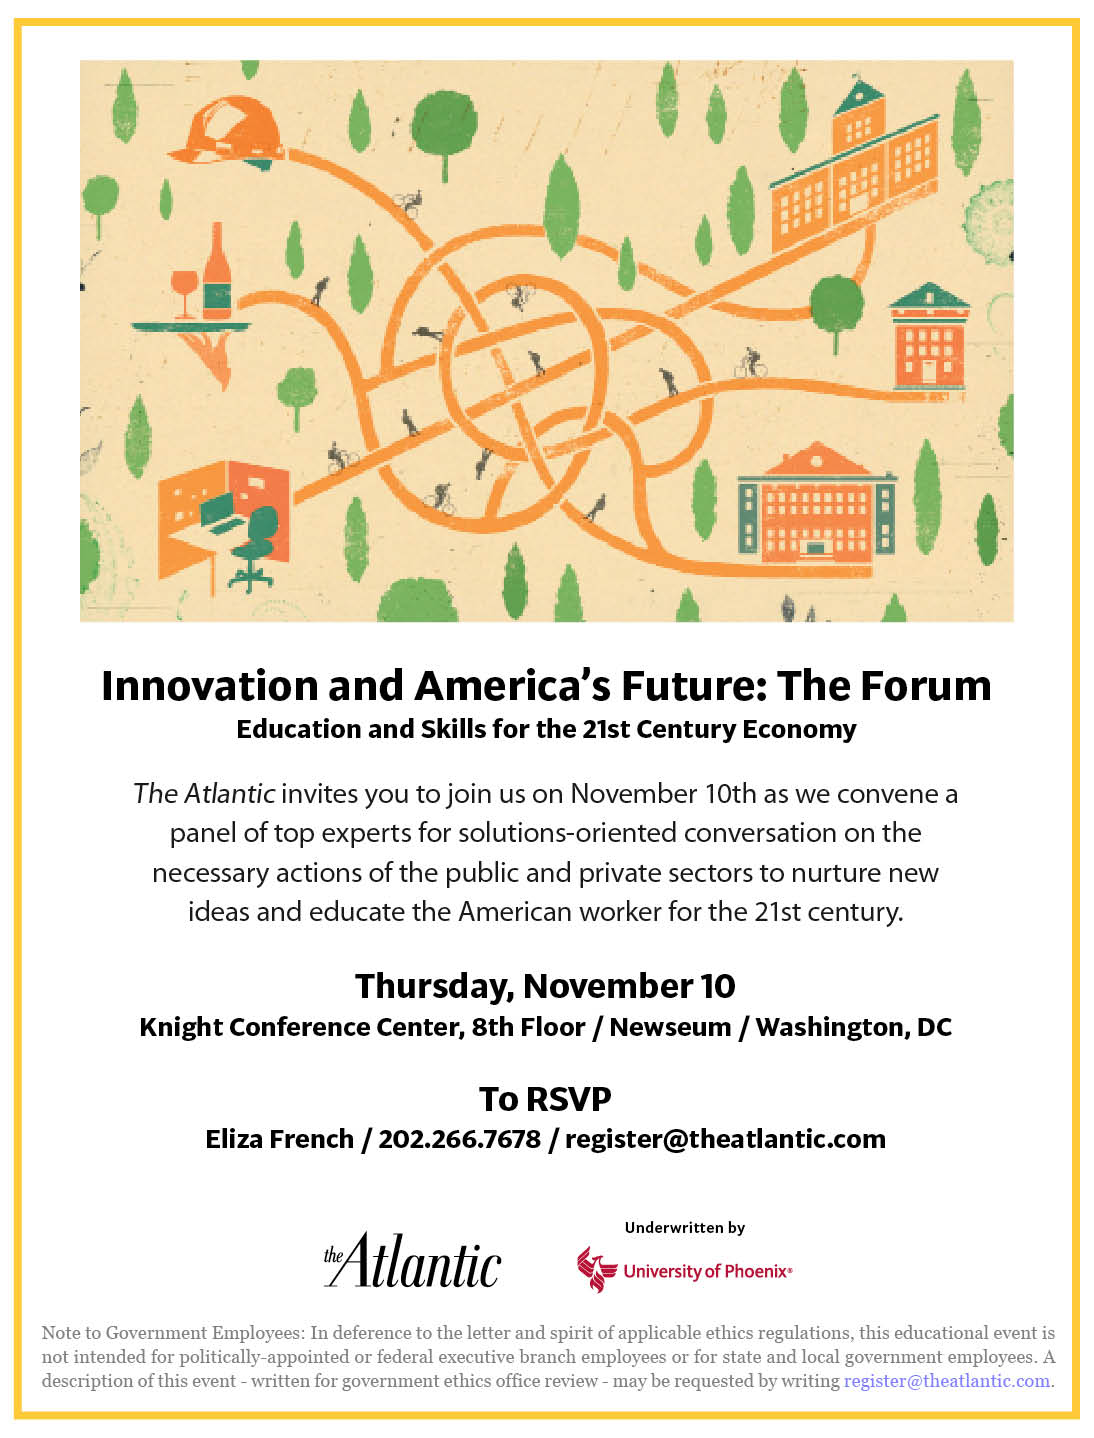 The Atlantic Innovation + America's Future Forum